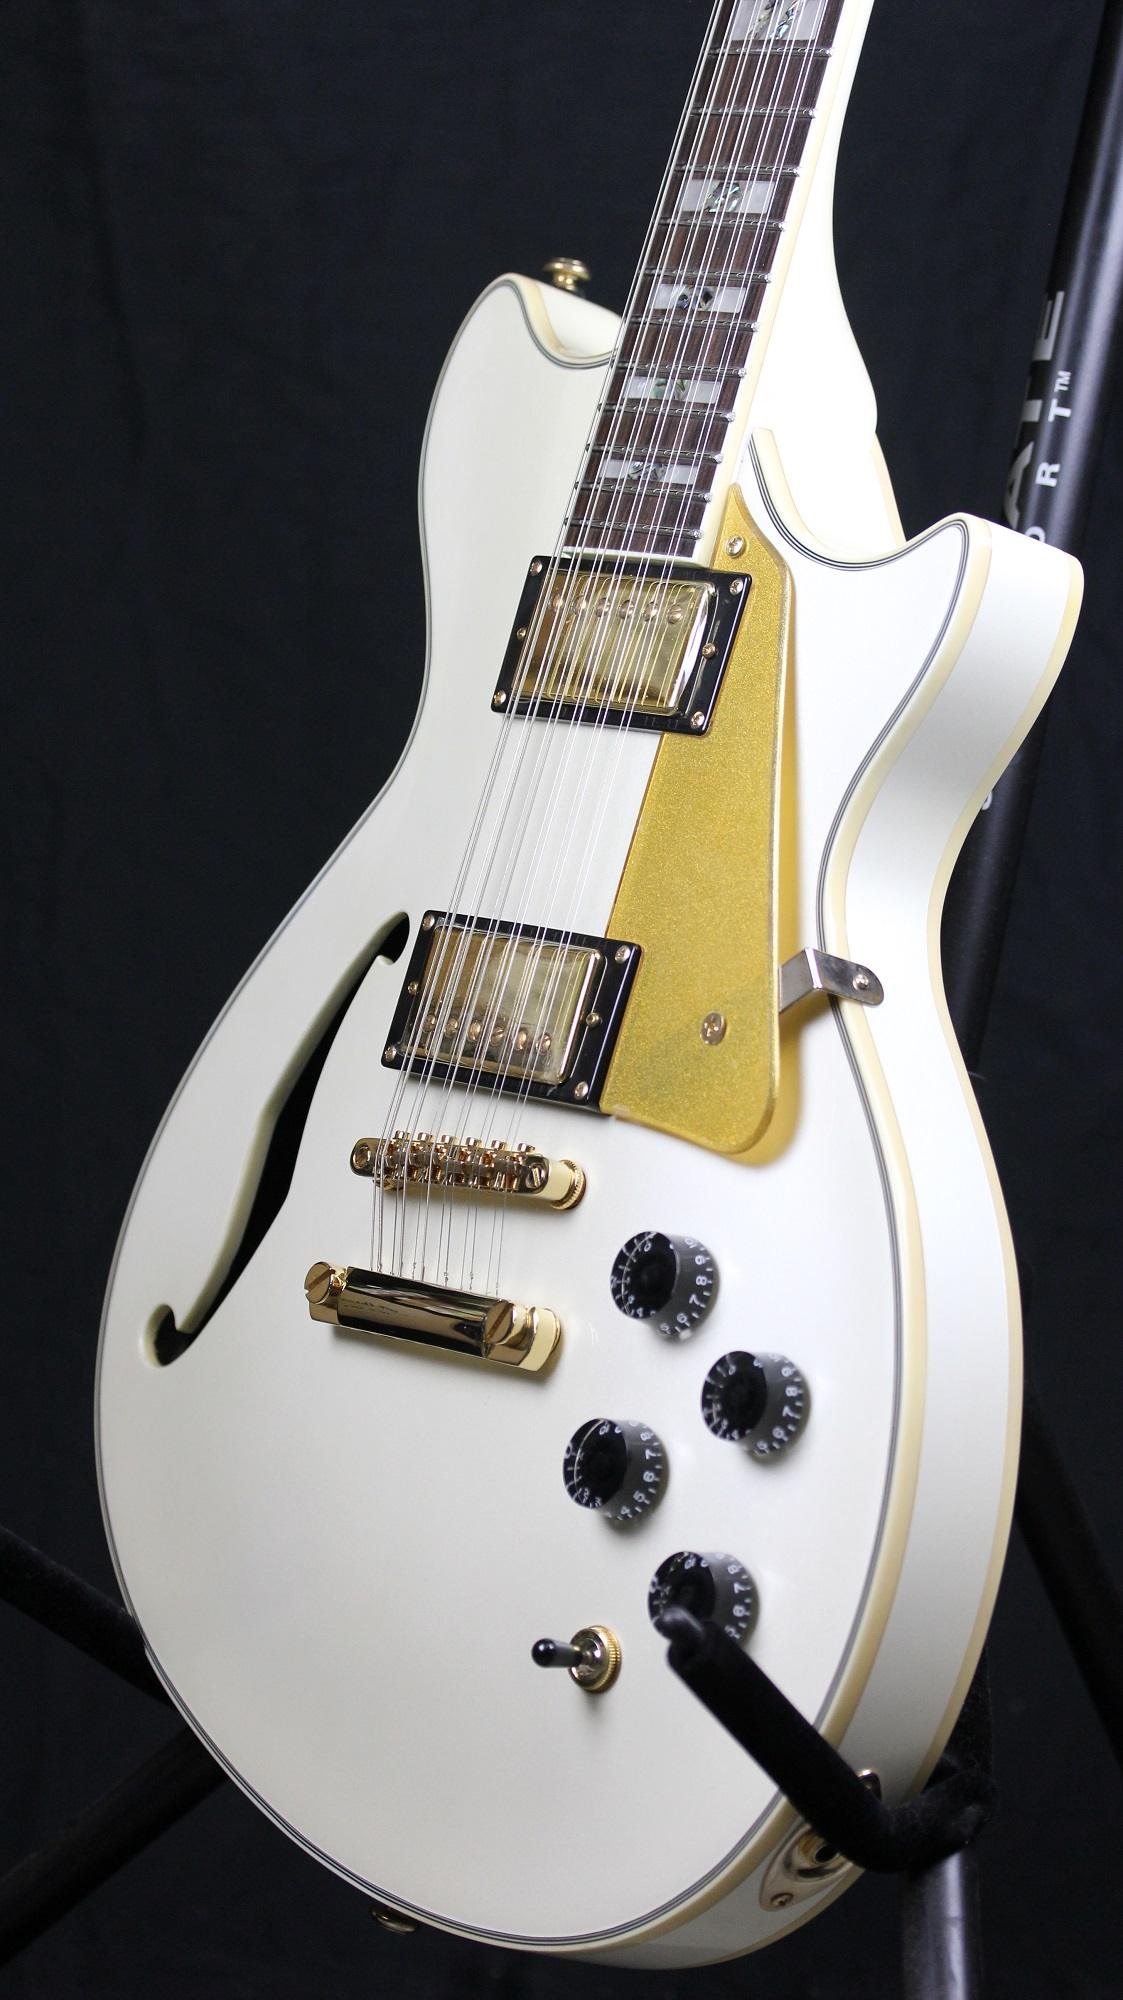 esp ltd xtone pc 2 12 white sample prototype 12 string electric guitar 6. Black Bedroom Furniture Sets. Home Design Ideas